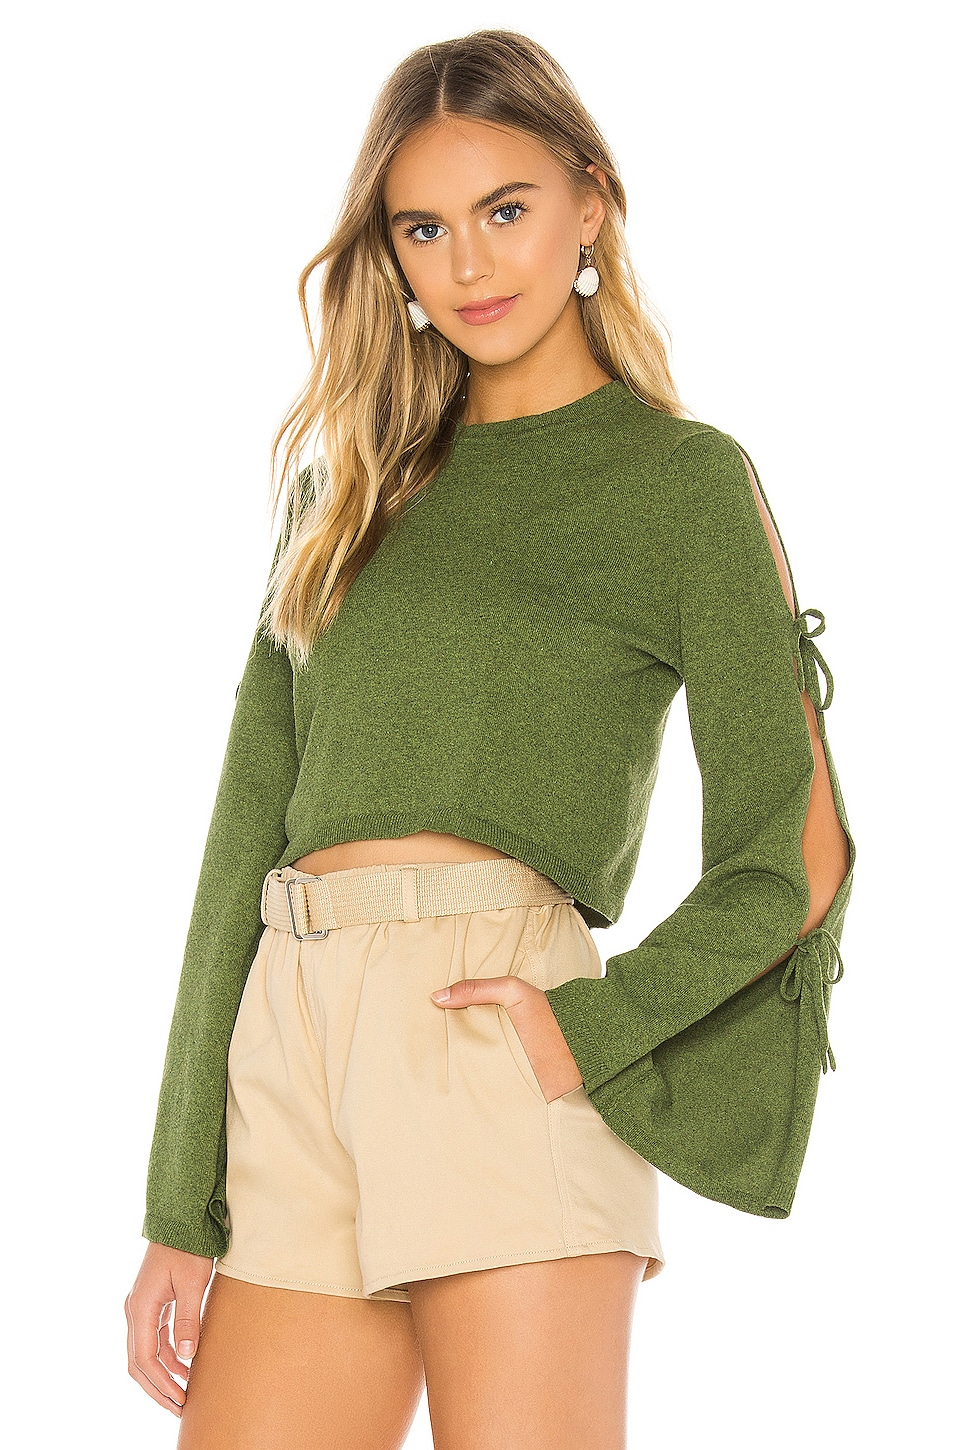 Tularosa Lasso Sweater in Moss